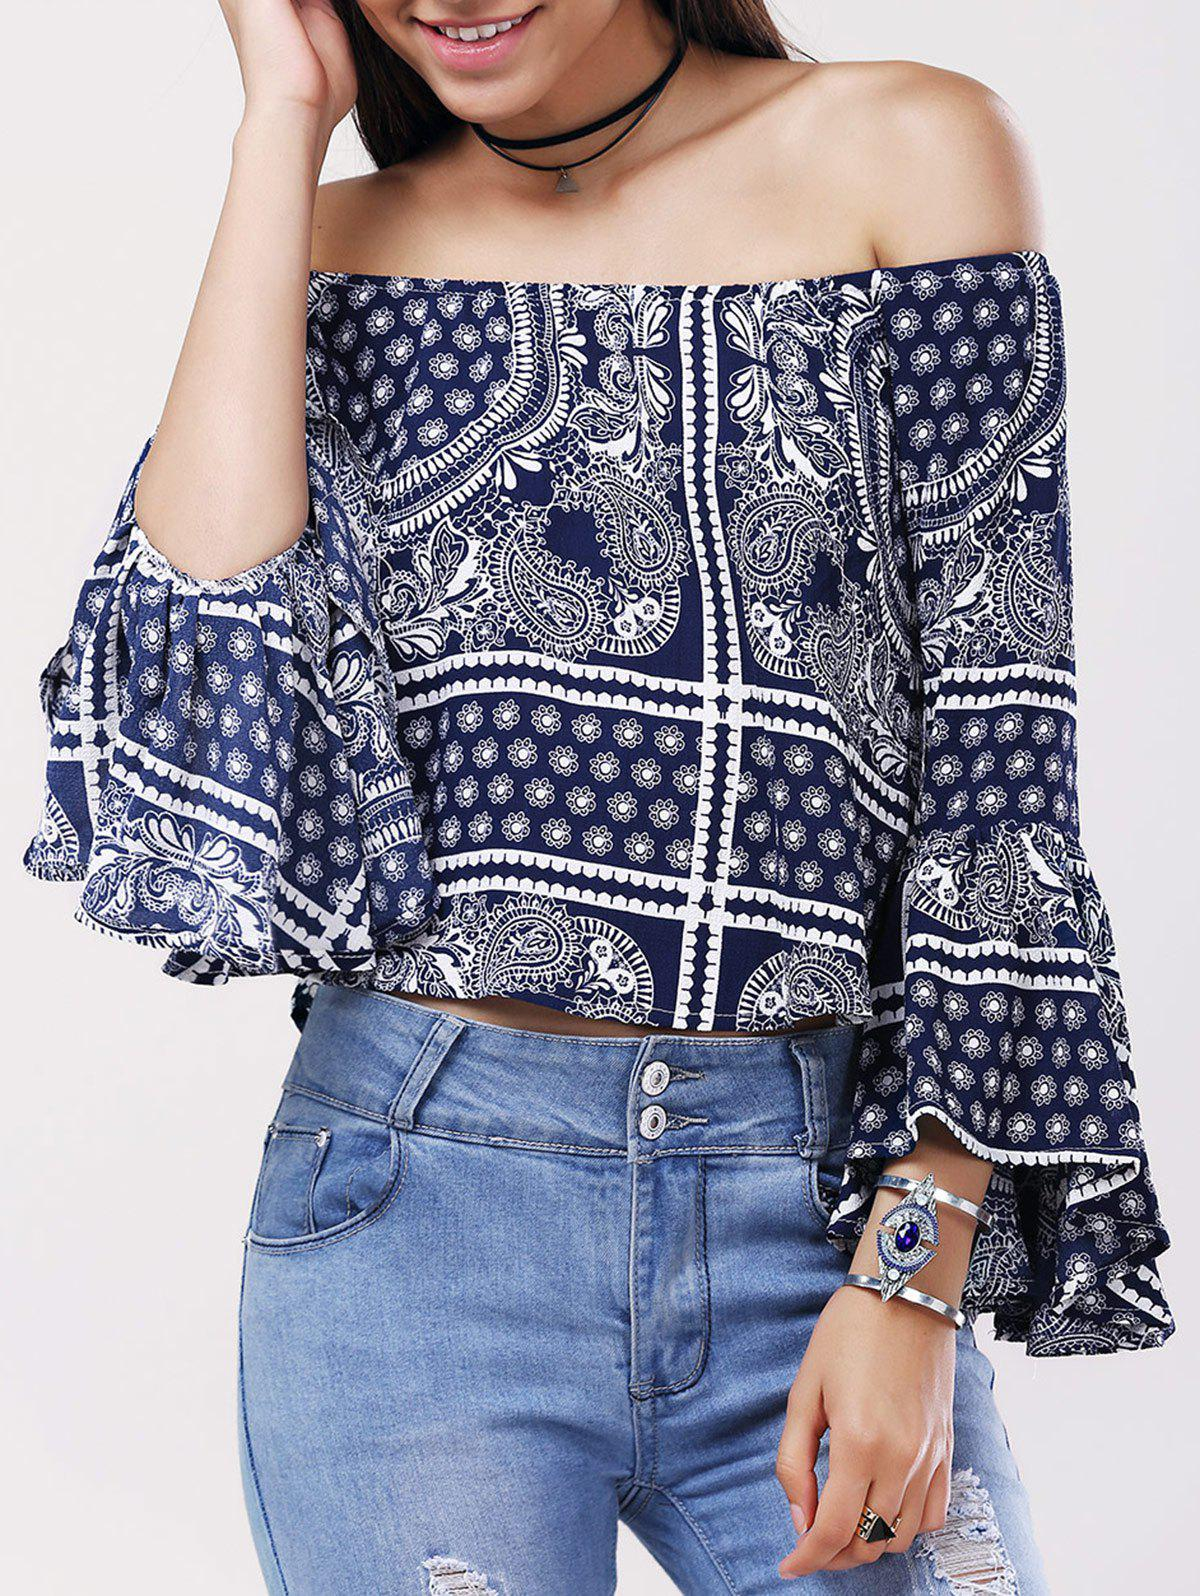 Ethnic Women's Off The Shoulder Tribal Print Bell Sleeves Blouse - PURPLISH BLUE ONE SIZE(FIT SIZE XS TO M)